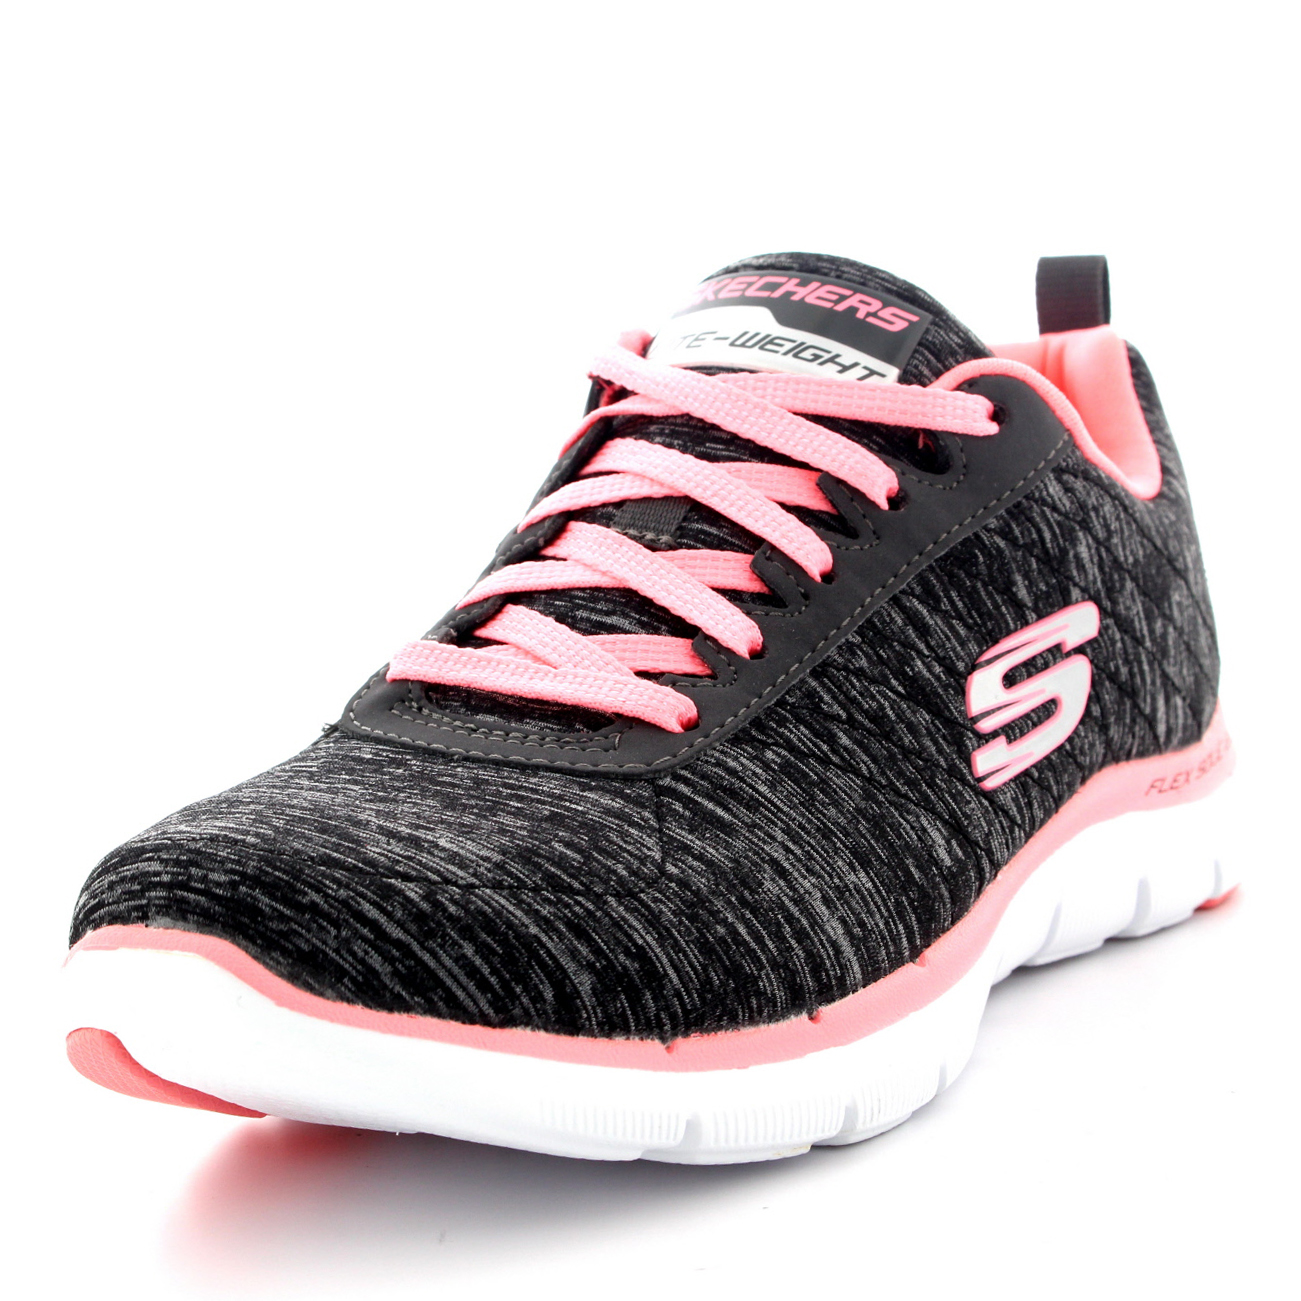 Buy skechers flex appeal with memory foam > OFF43% Discounted